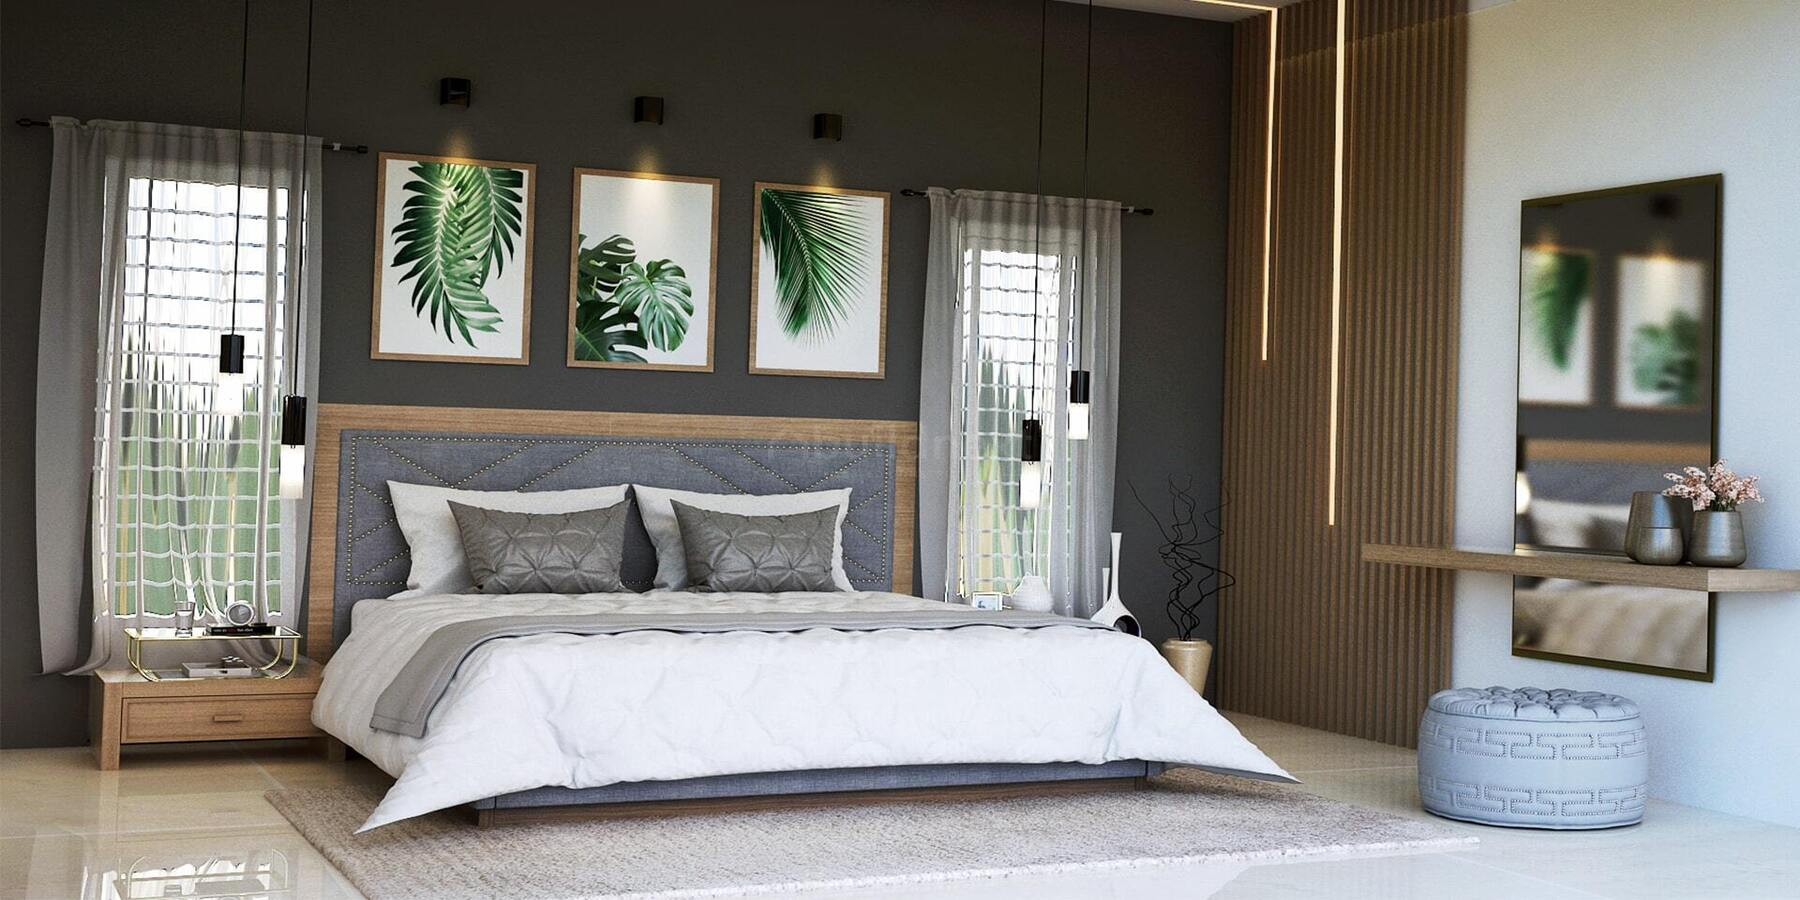 Top 10 Bedroom Design Ideas For 2021 - BuildNext Connect